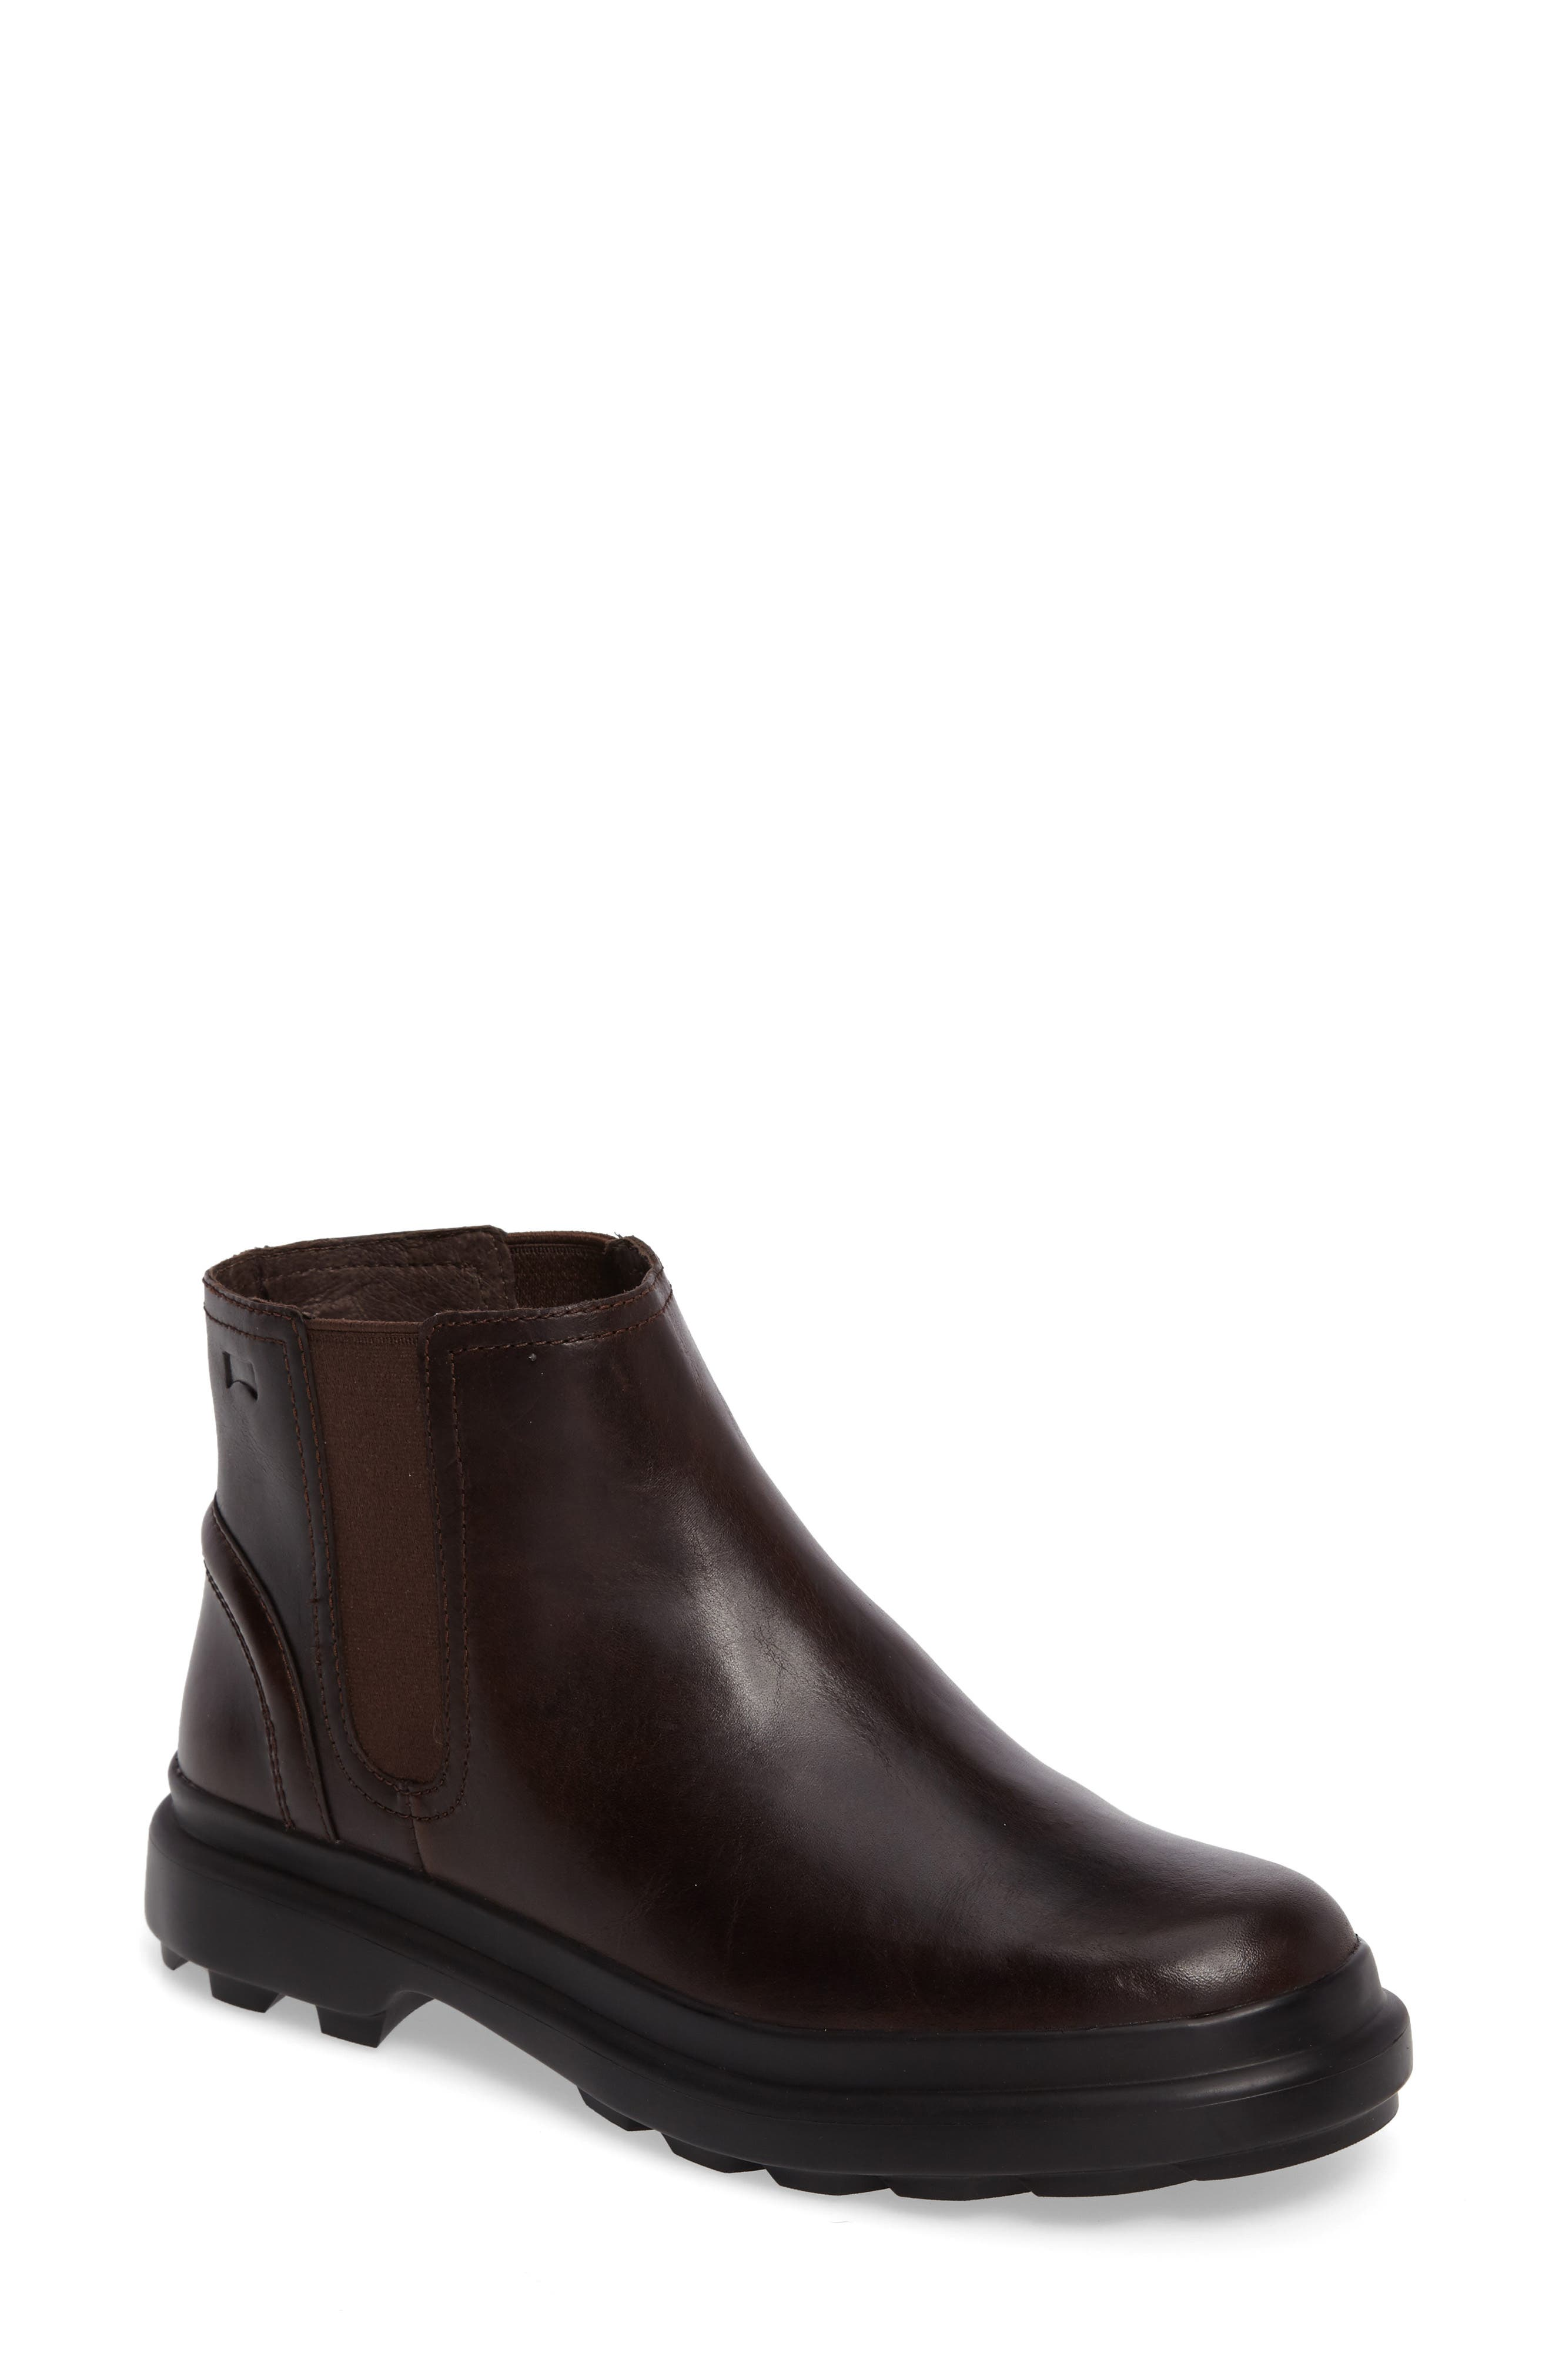 Turtle Lugged Chelsea Boot,                         Main,                         color, Dark Brown Leather